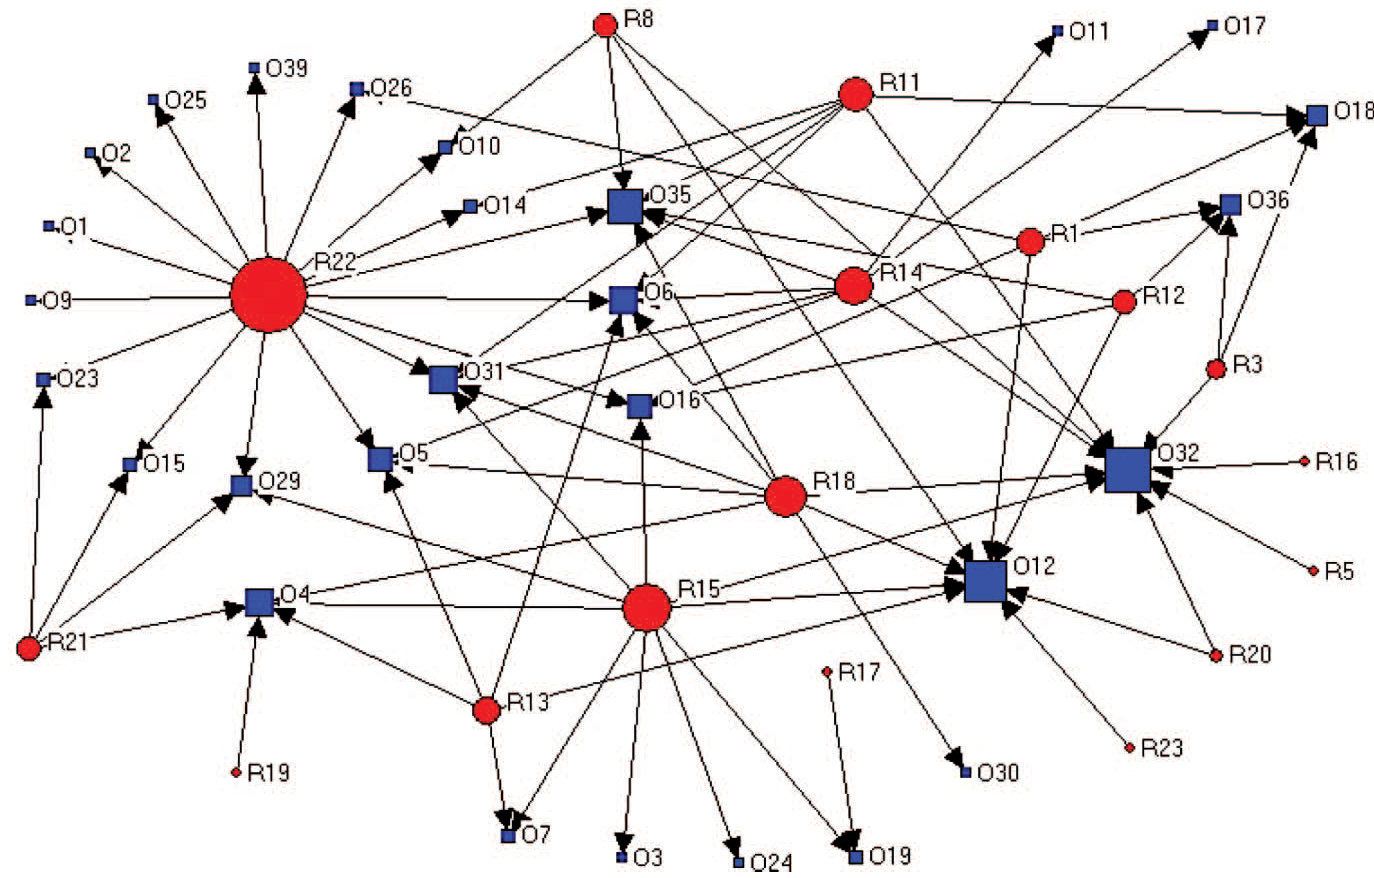 Developing Networks for Community Change: Exploring the Utility of Network Analysis (2011)